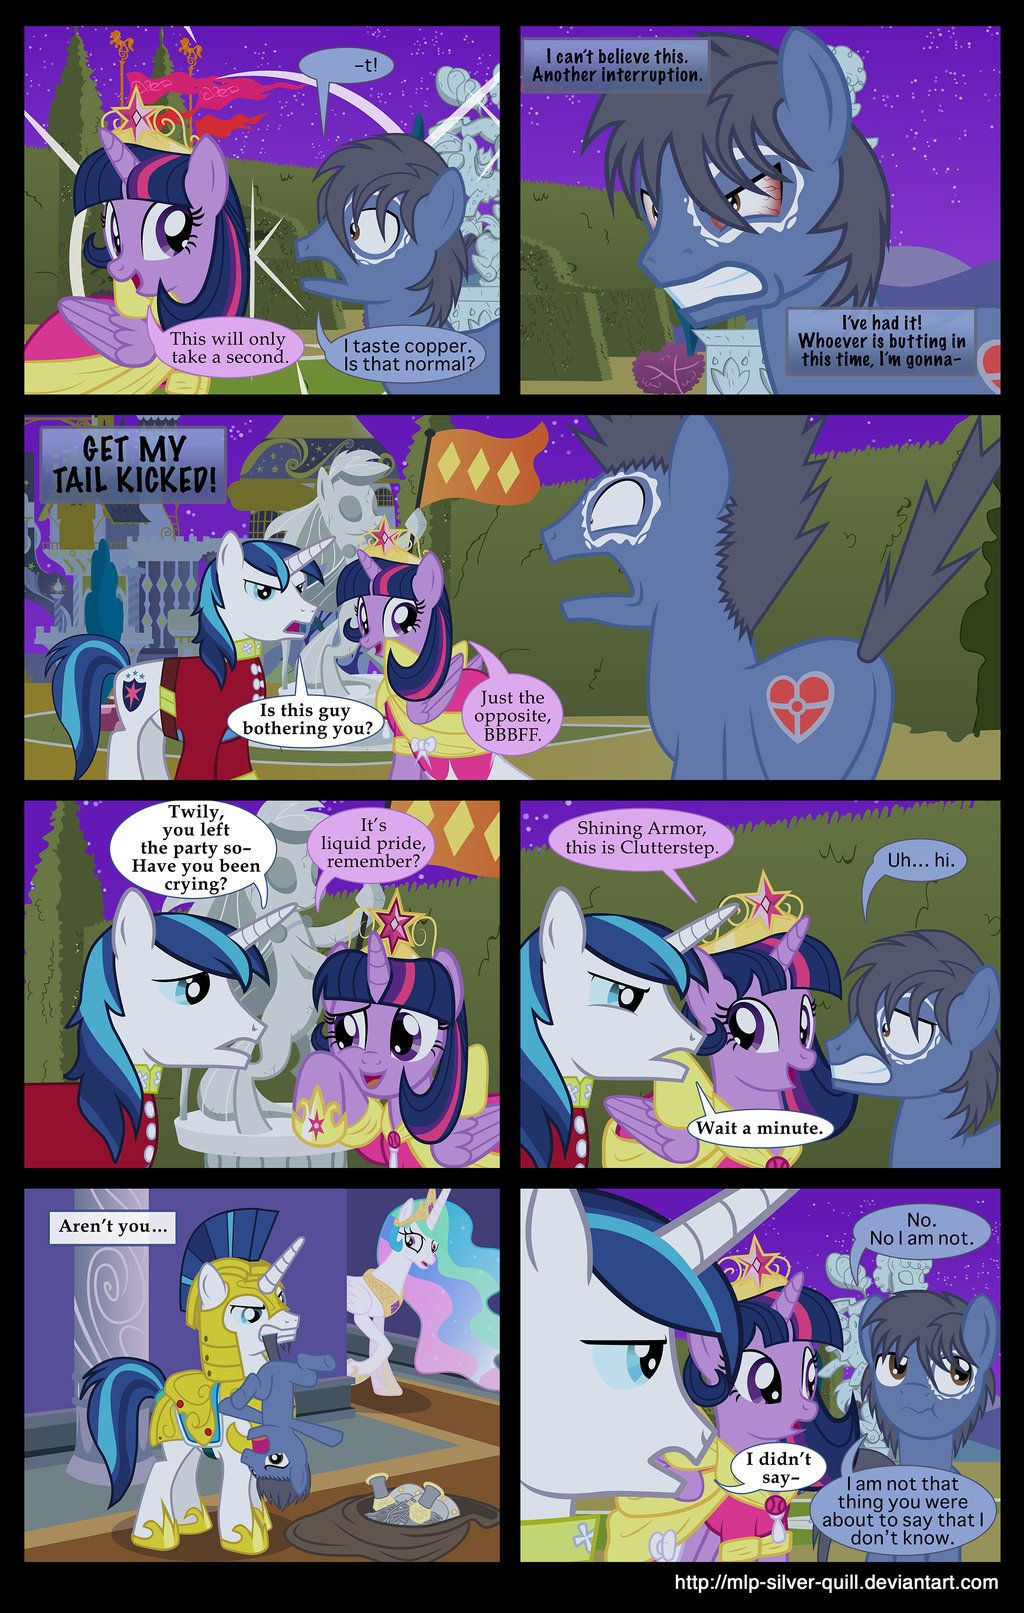 A Princess' Tears - Part 25 by MLP-Silver-Quill.deviantart.com on @deviantART